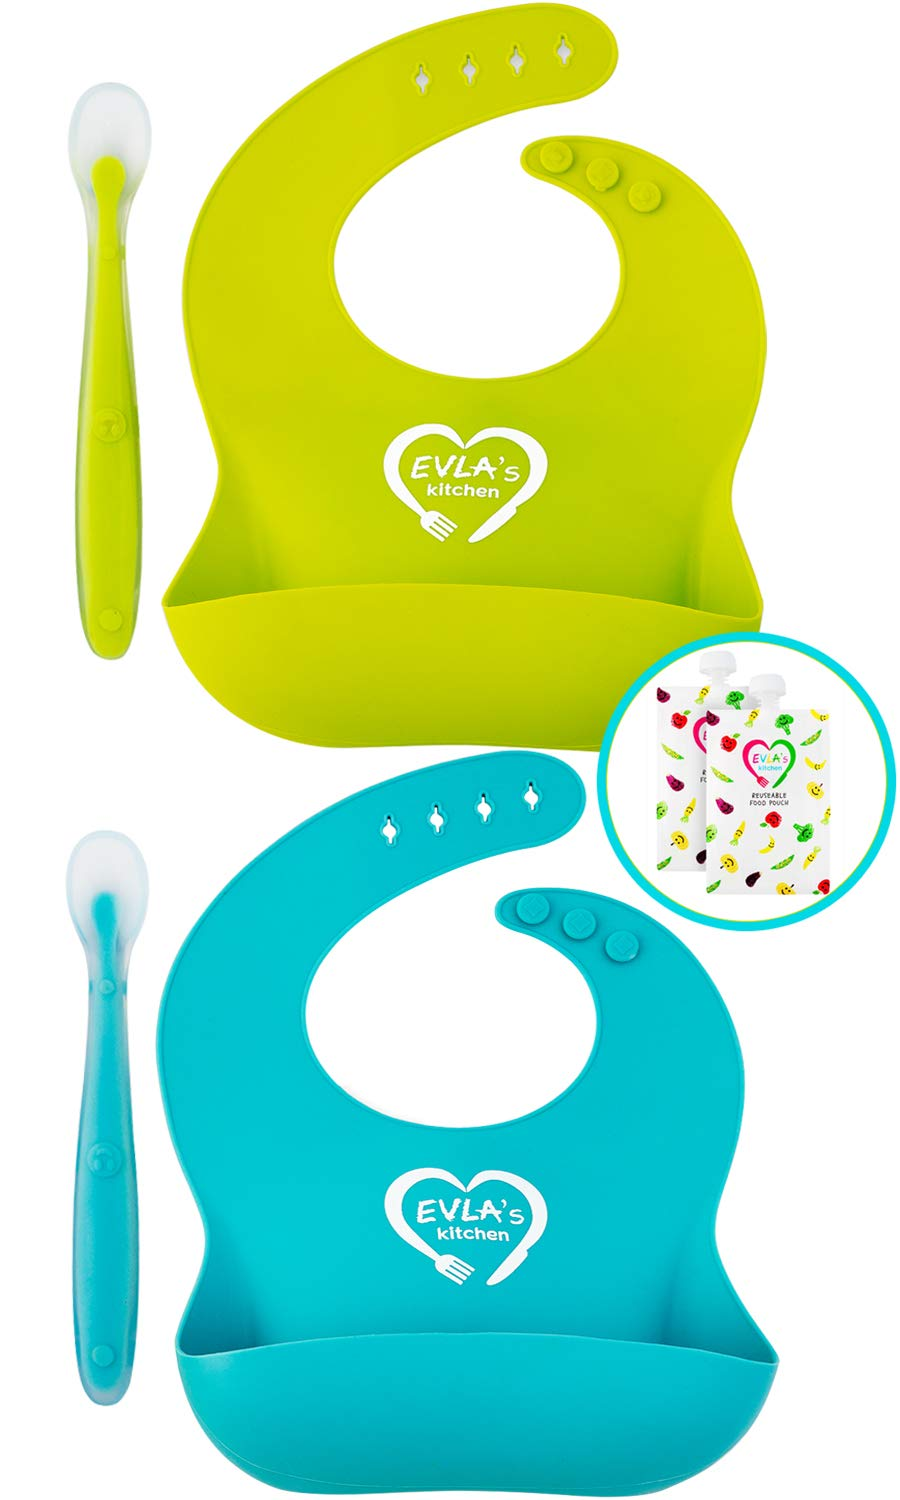 Silicone Bibs for Babies & Toddlers | Silicone Bib Easy Clean | 100% Safe Baby Bibs Silicone | Premium Silicon Bibs Waterproof Bibs | No More Messy Mealtimes | Bonus Baby Spoon & Food Pouches Reusable by EVLA'S